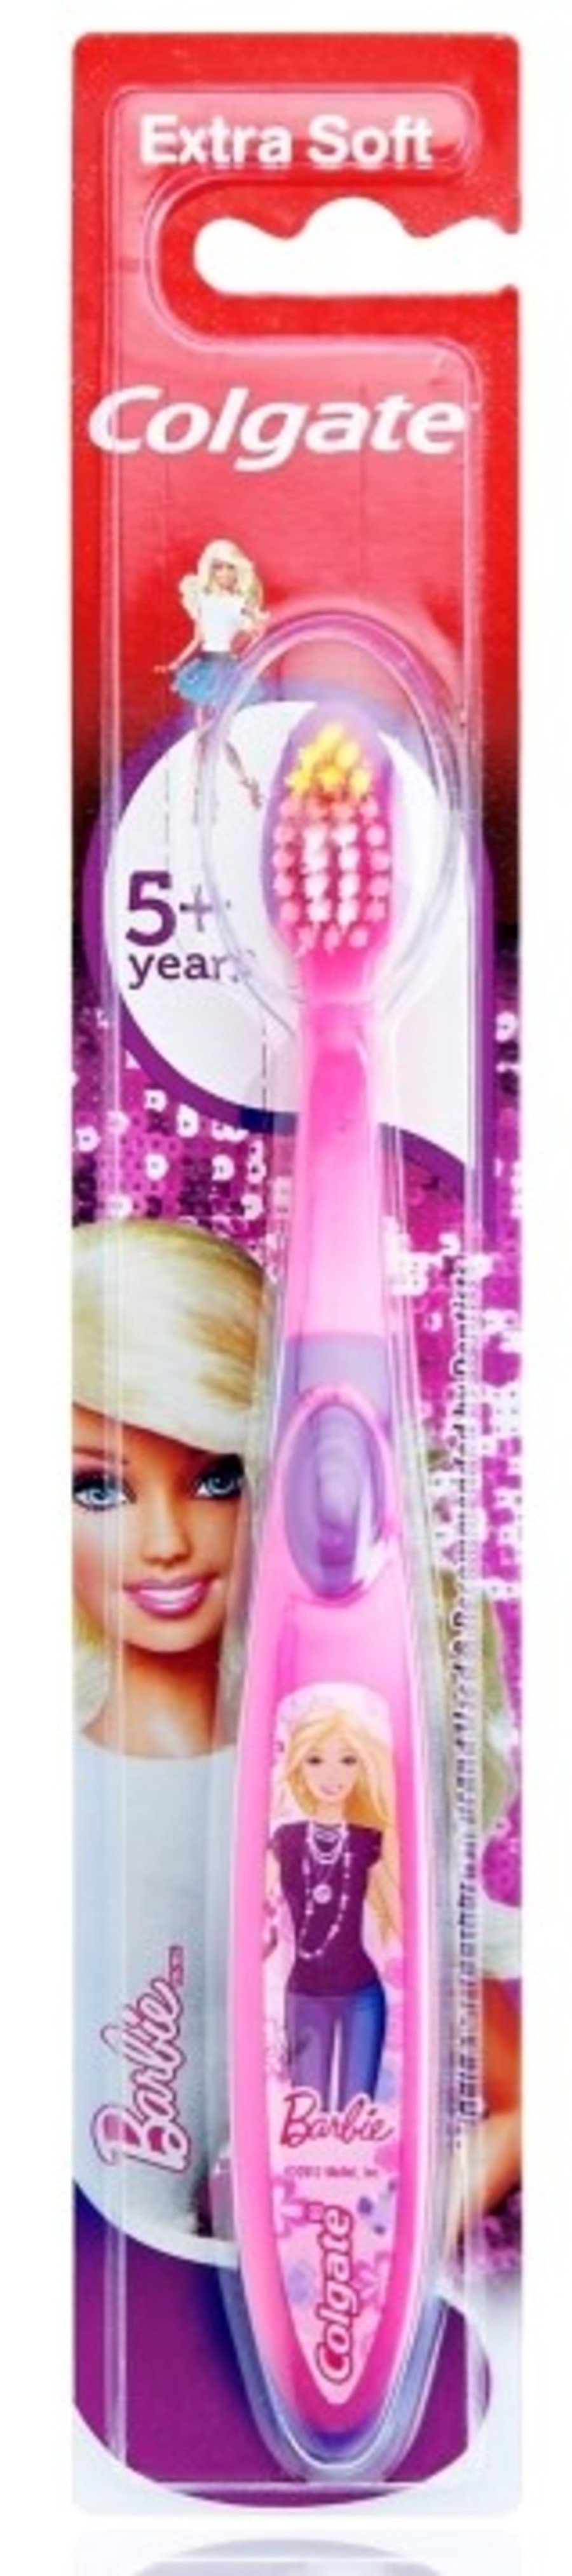 Colgate Kids Toothbrush Barbie - Extra Soft -1 Pc